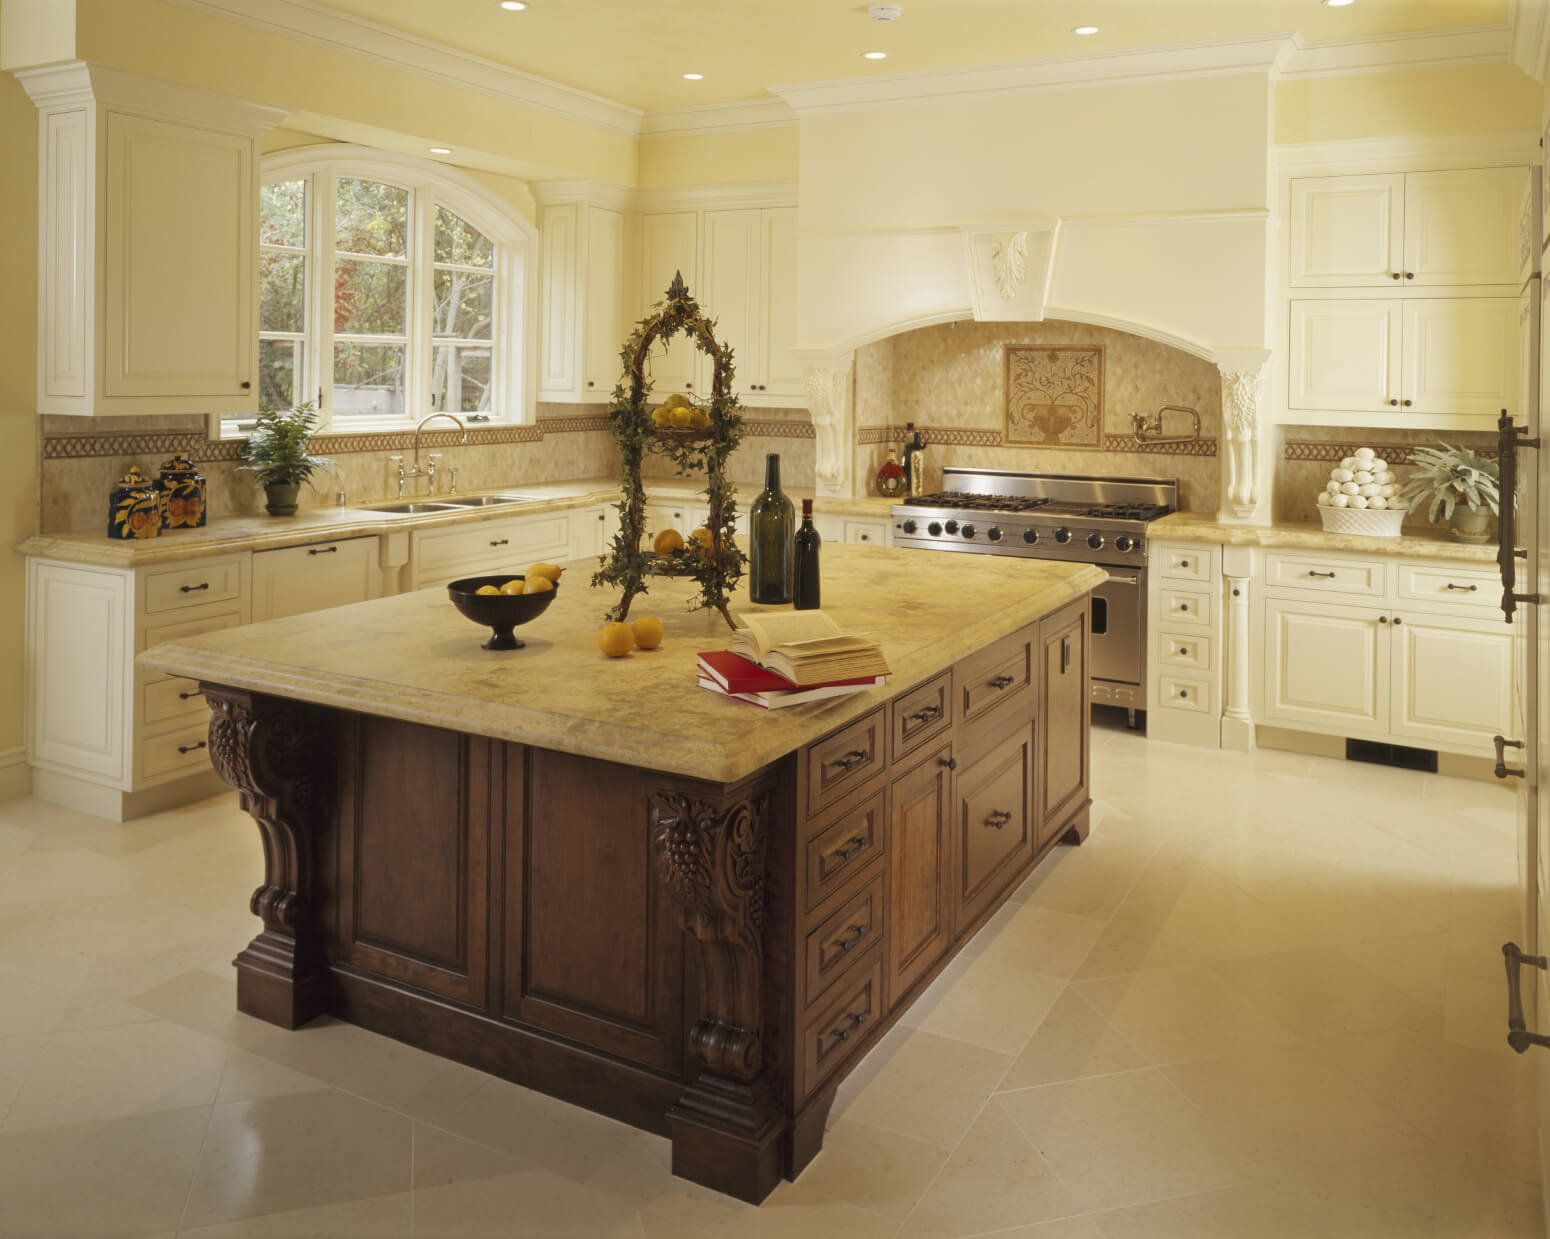 Kitchen Island Design Ideas ~ Luxury dream kitchen designs worth every penny photos